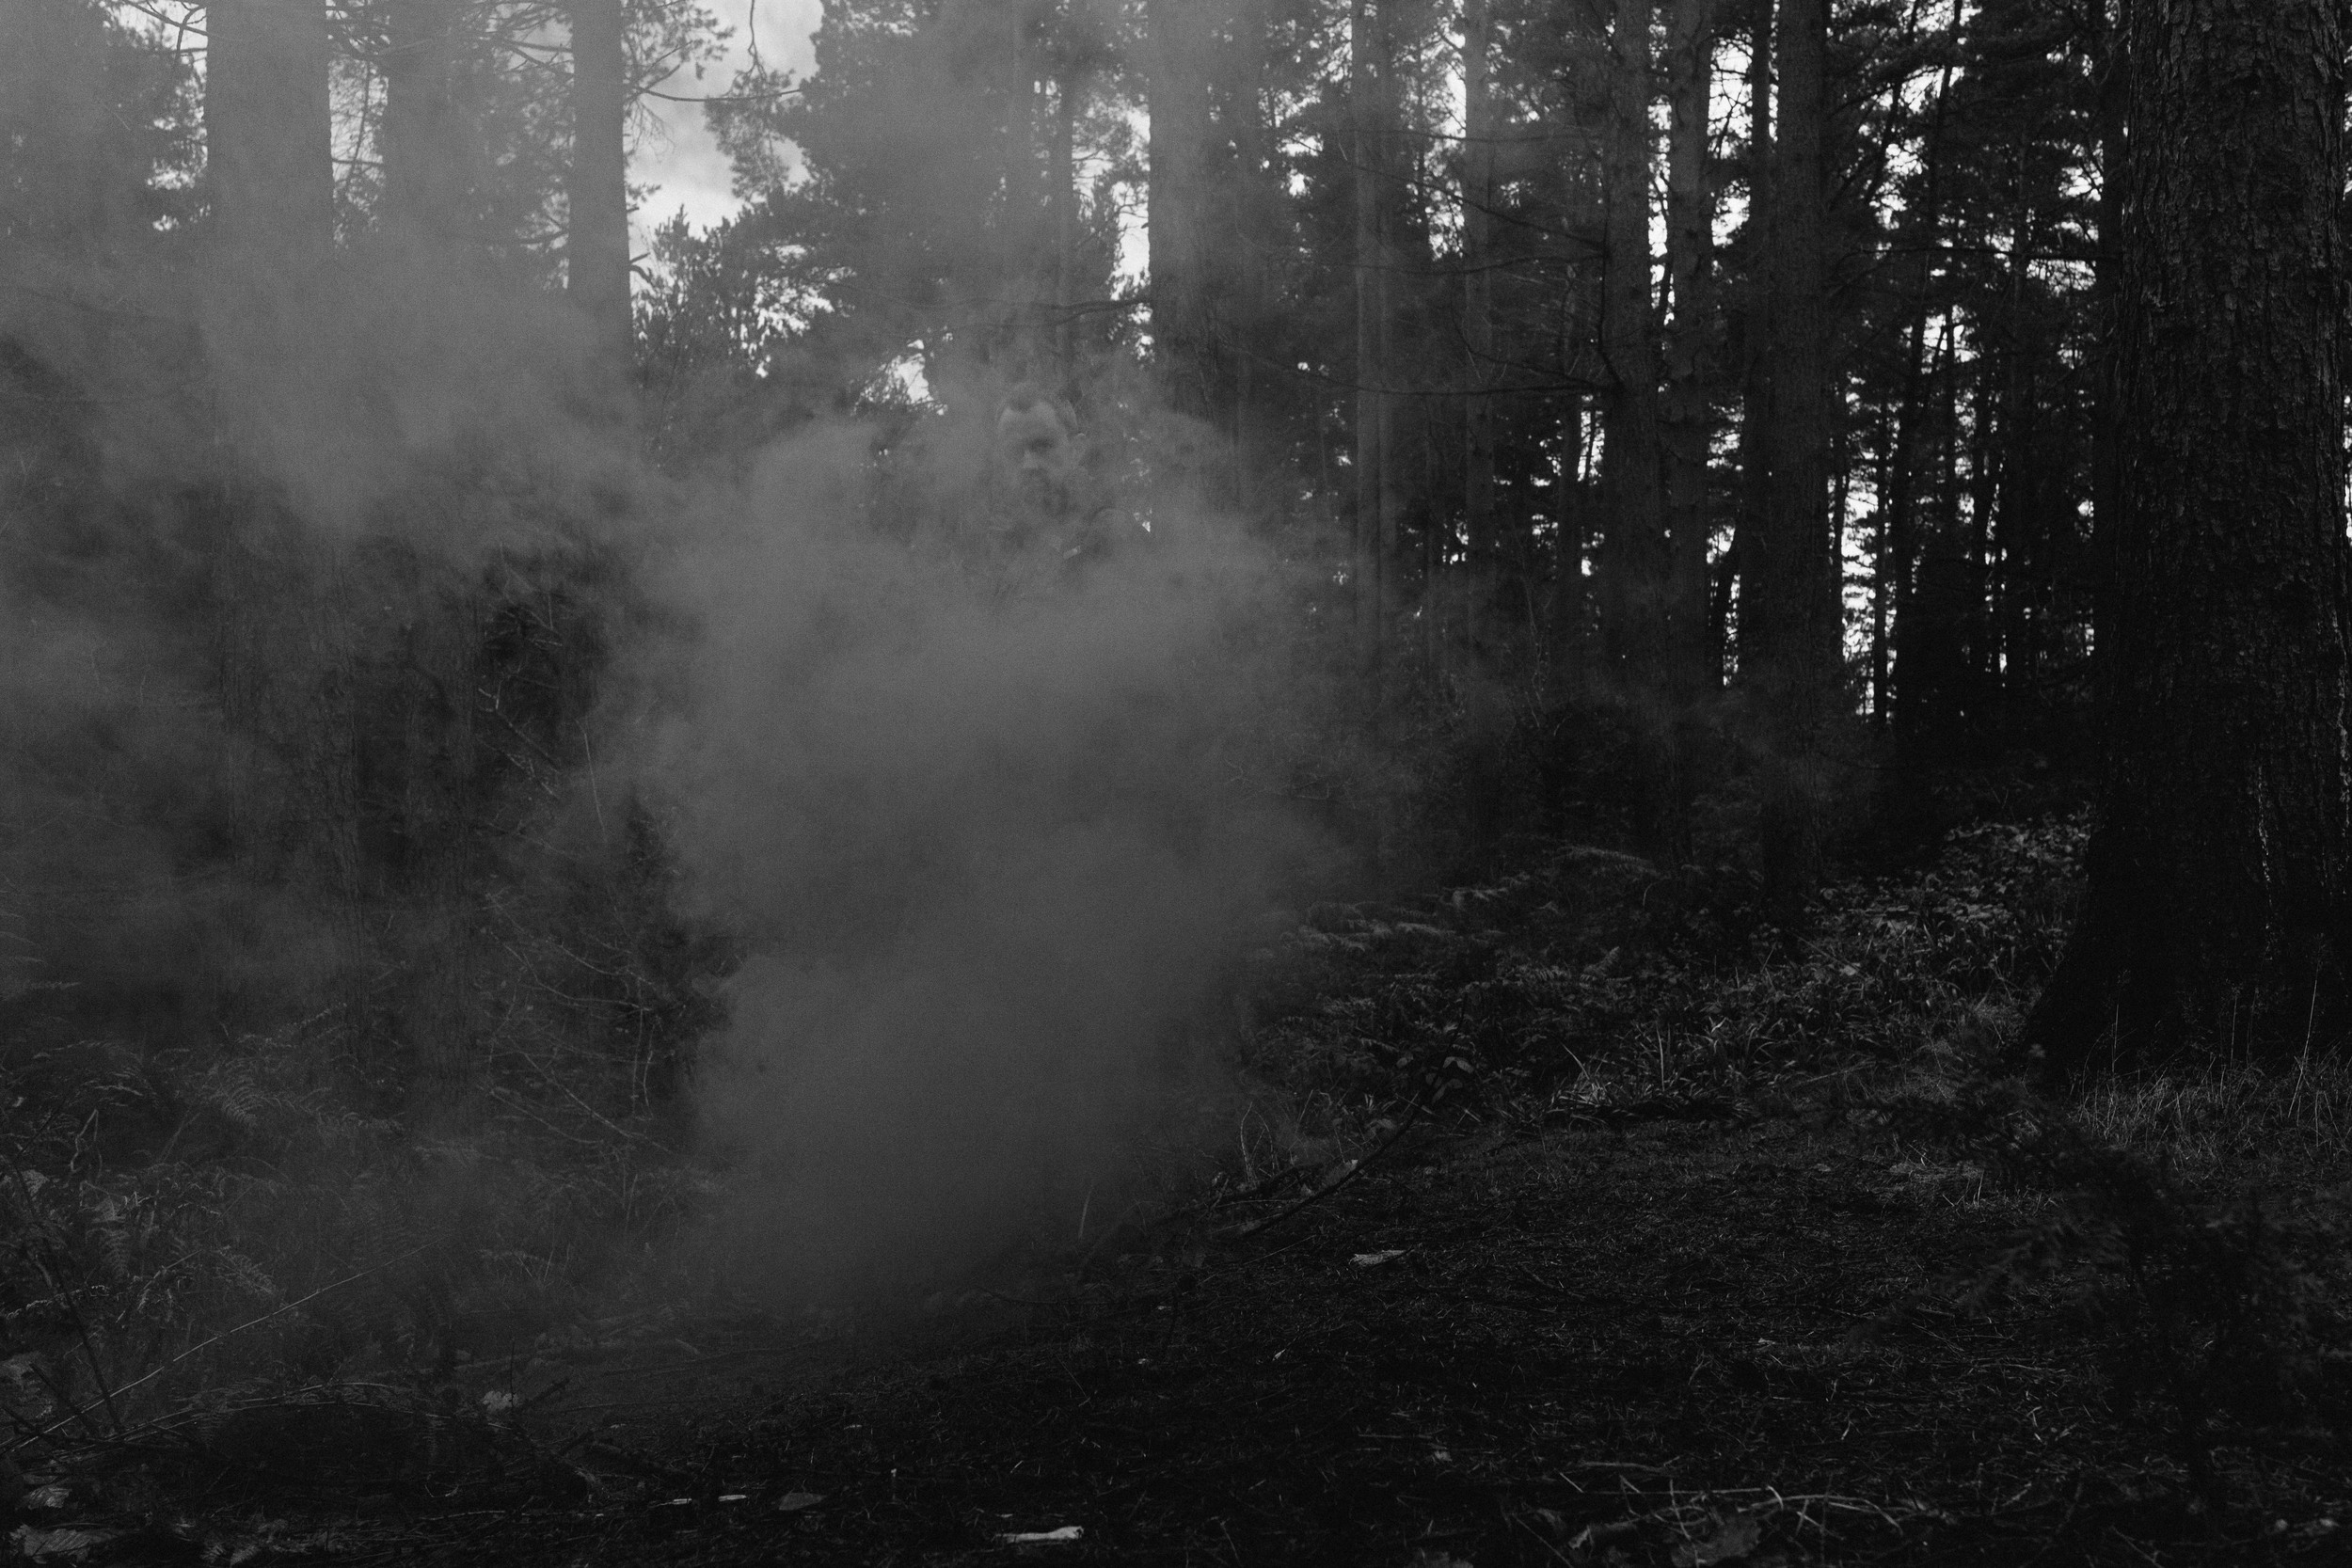 Barry Forshaw // Engagement test shot with smoke bomb at Chopwell Woods (black and white)